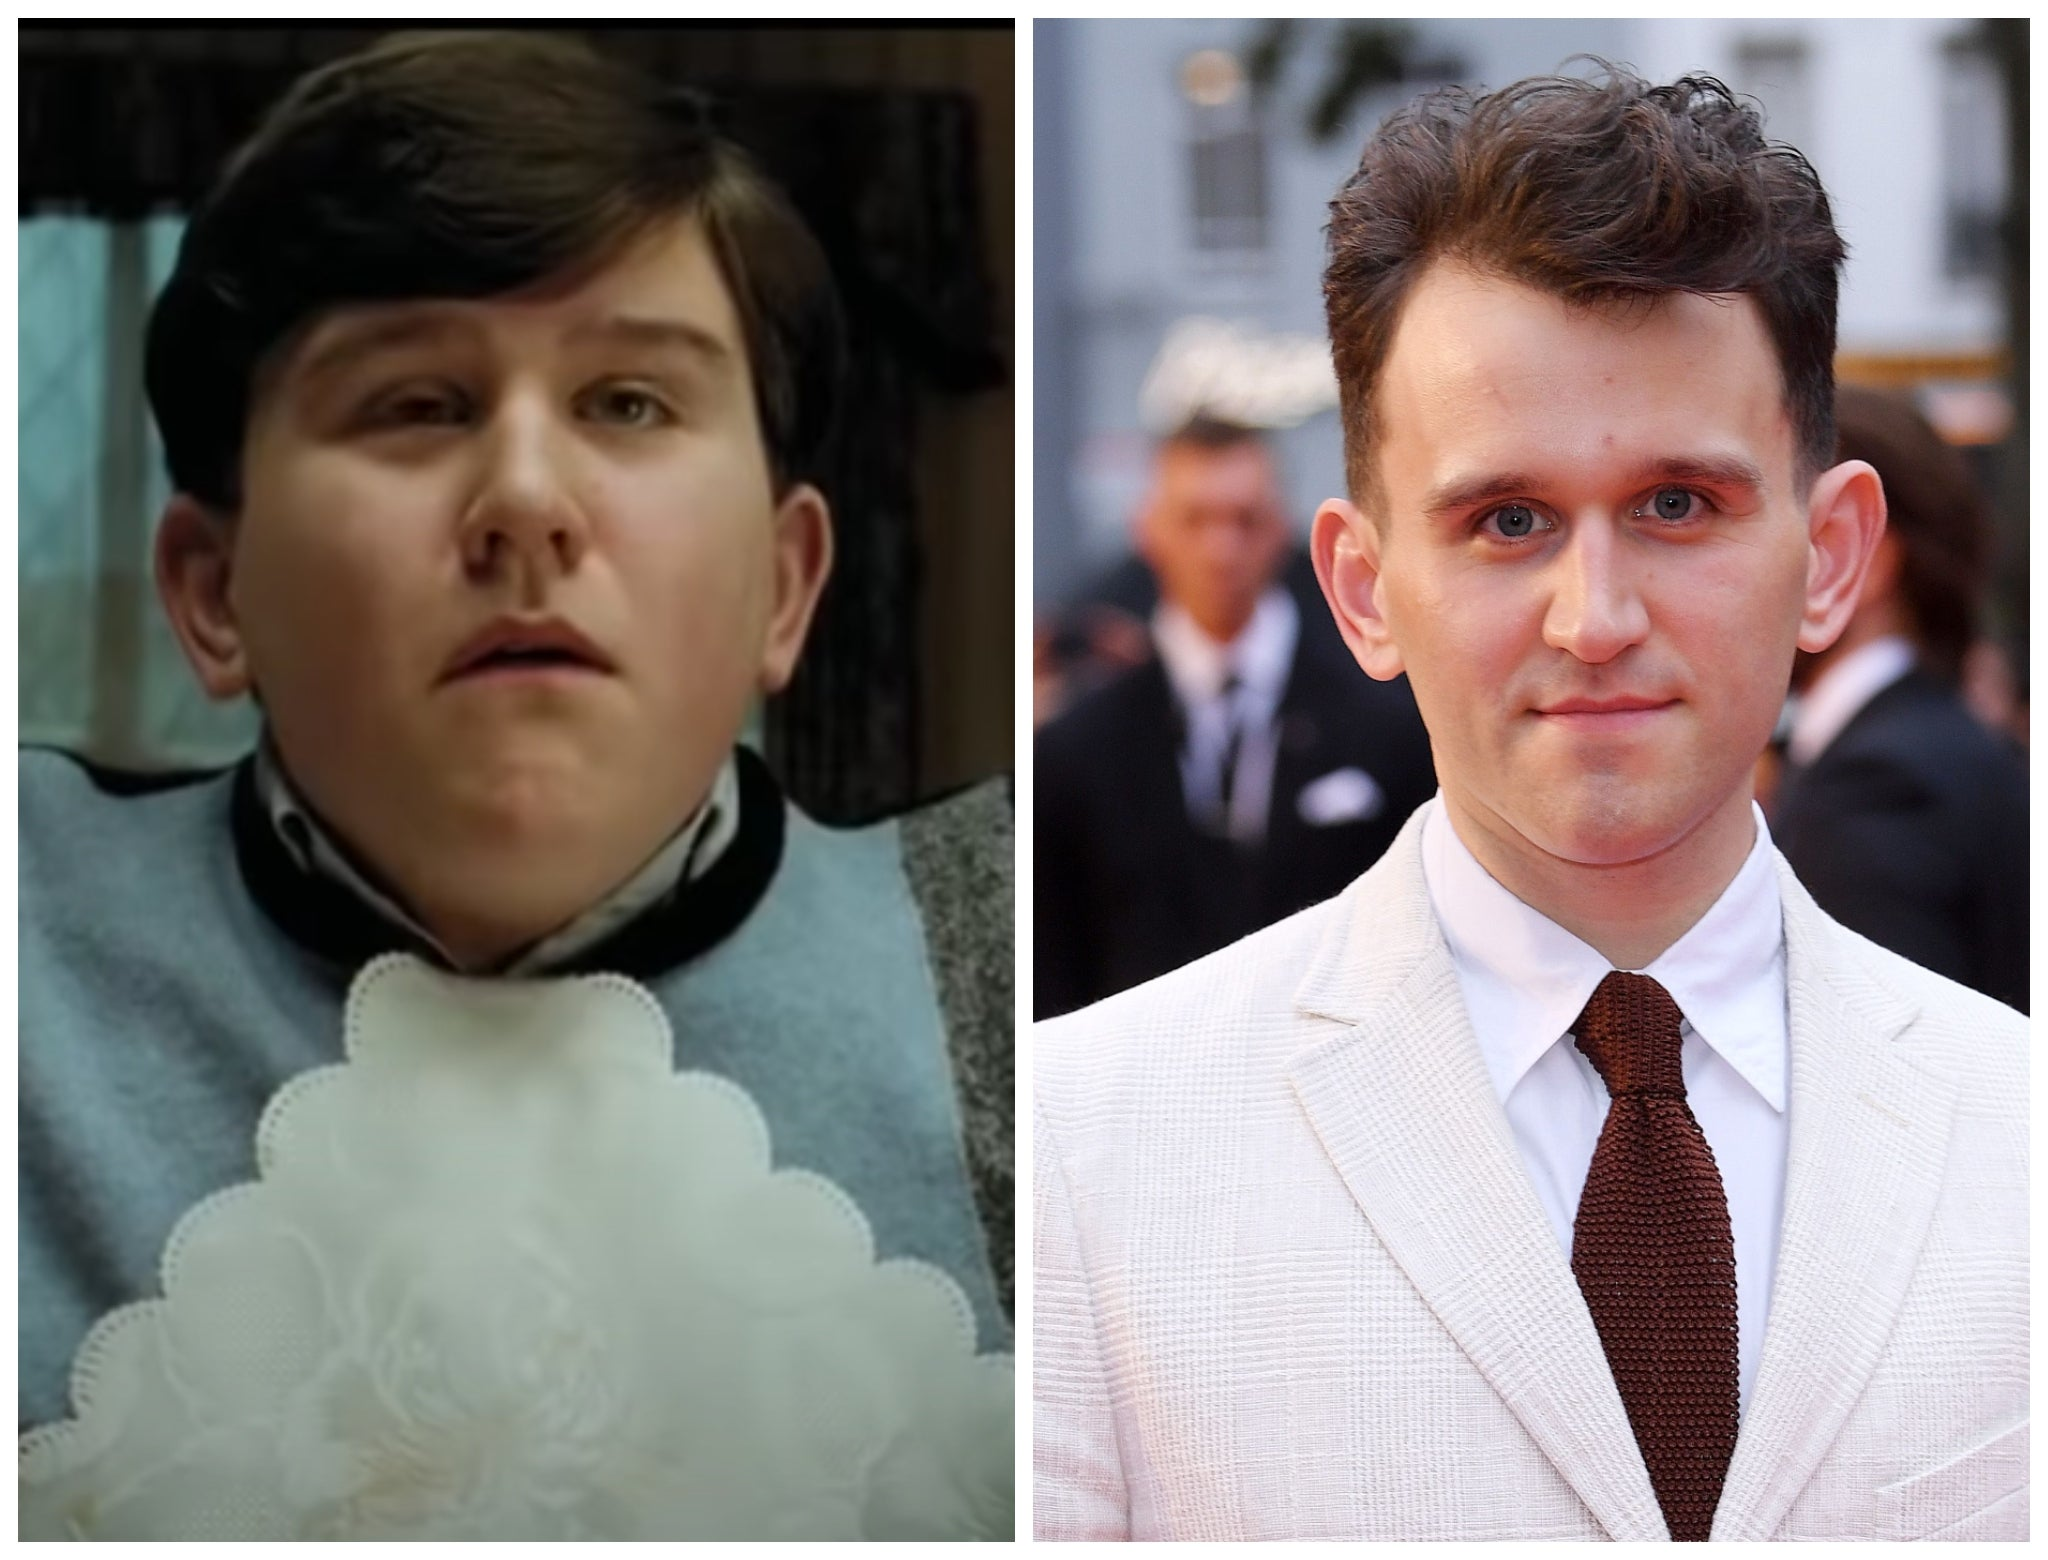 the queen s gambit star harry melling says weight loss means people no longer recognise him from harry potter the independent the queen s gambit star harry melling